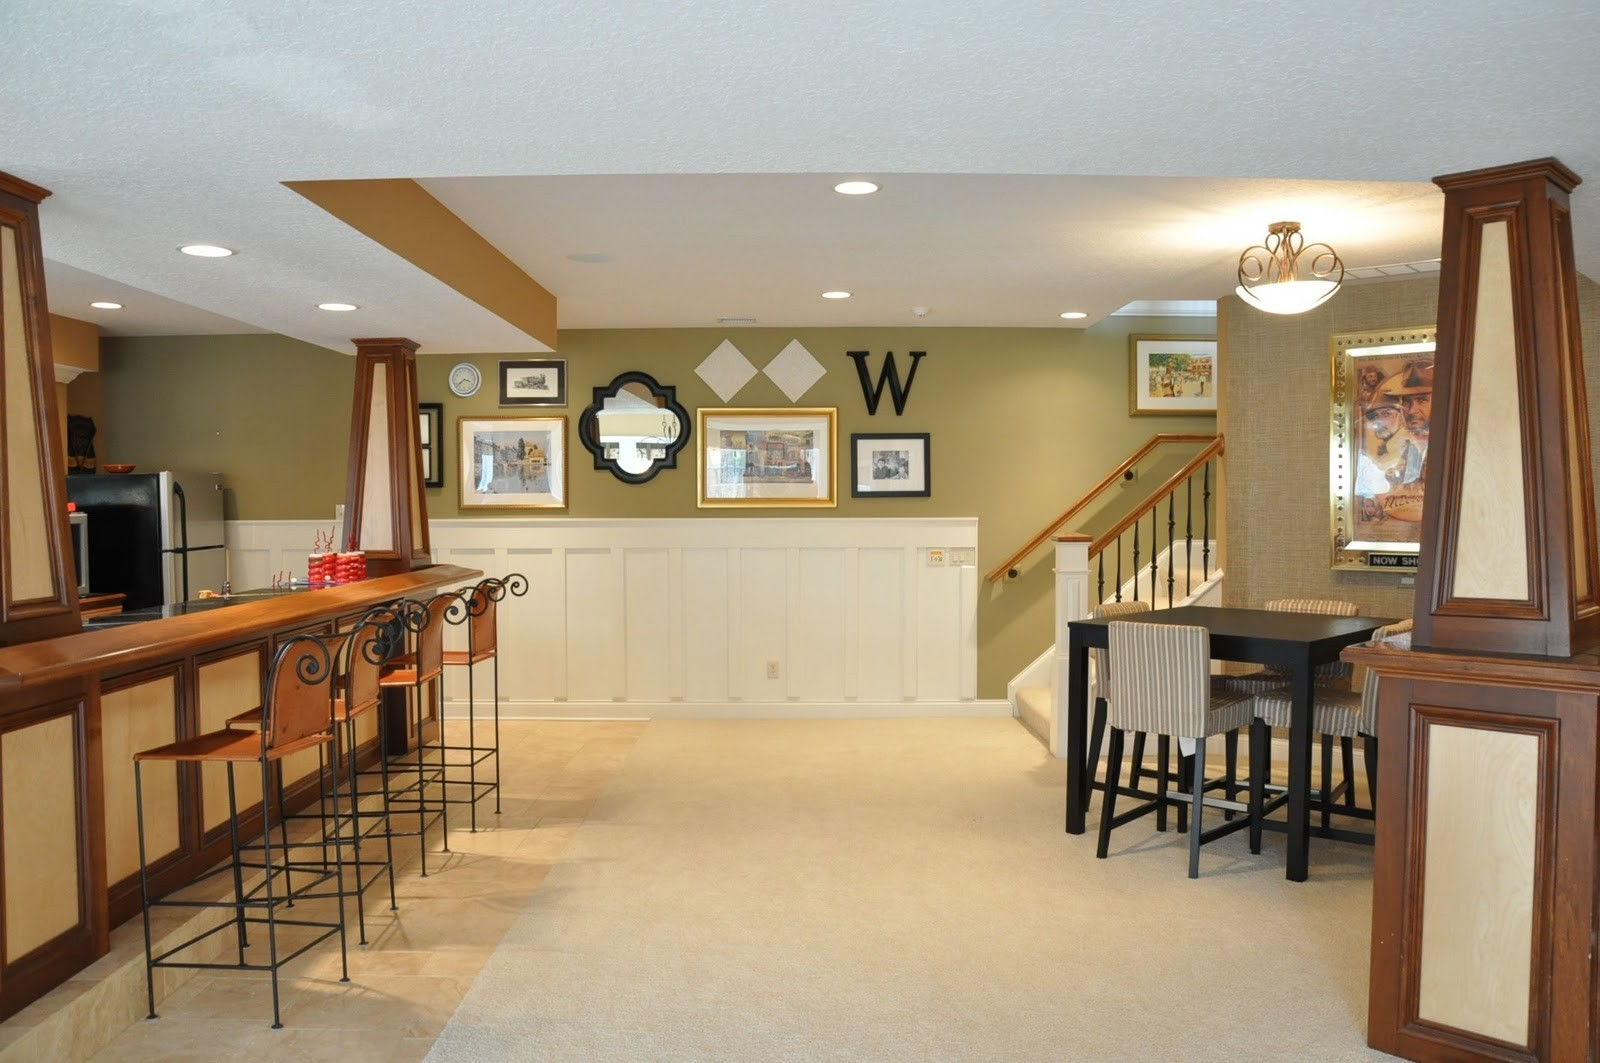 Picture of: Beautiful Paint Colors for Basement